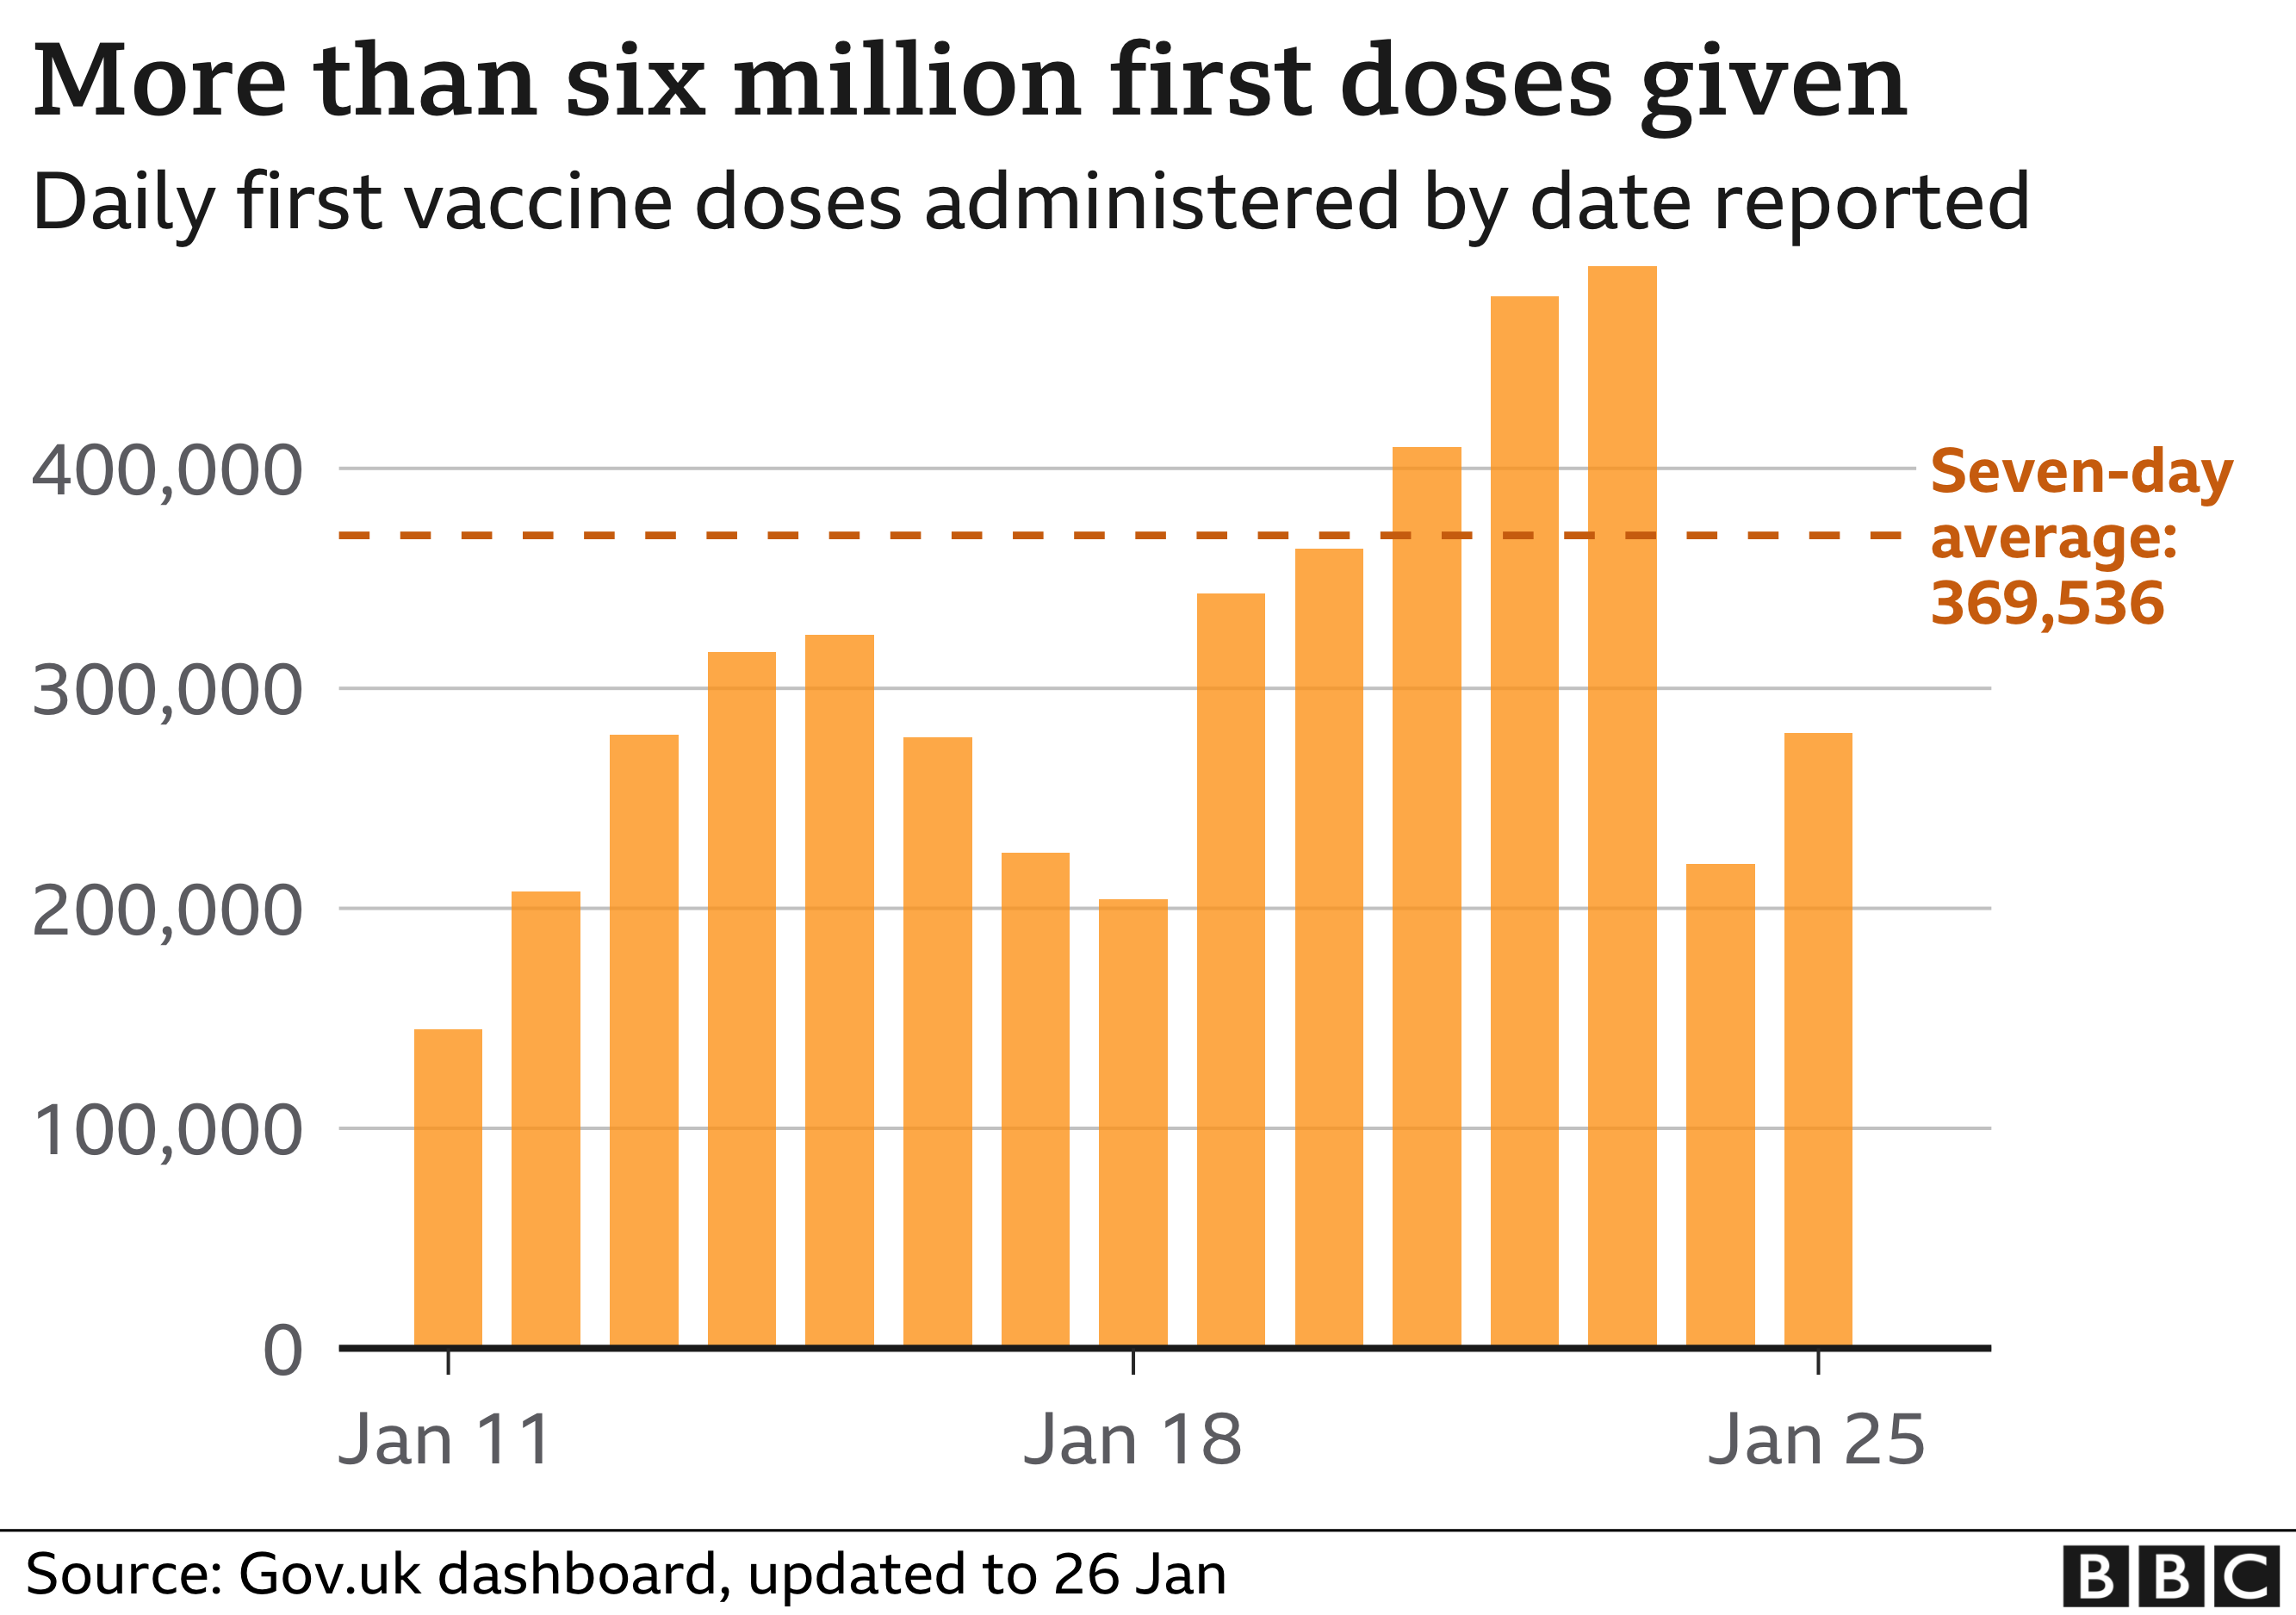 Chart shows daily vaccinations totals